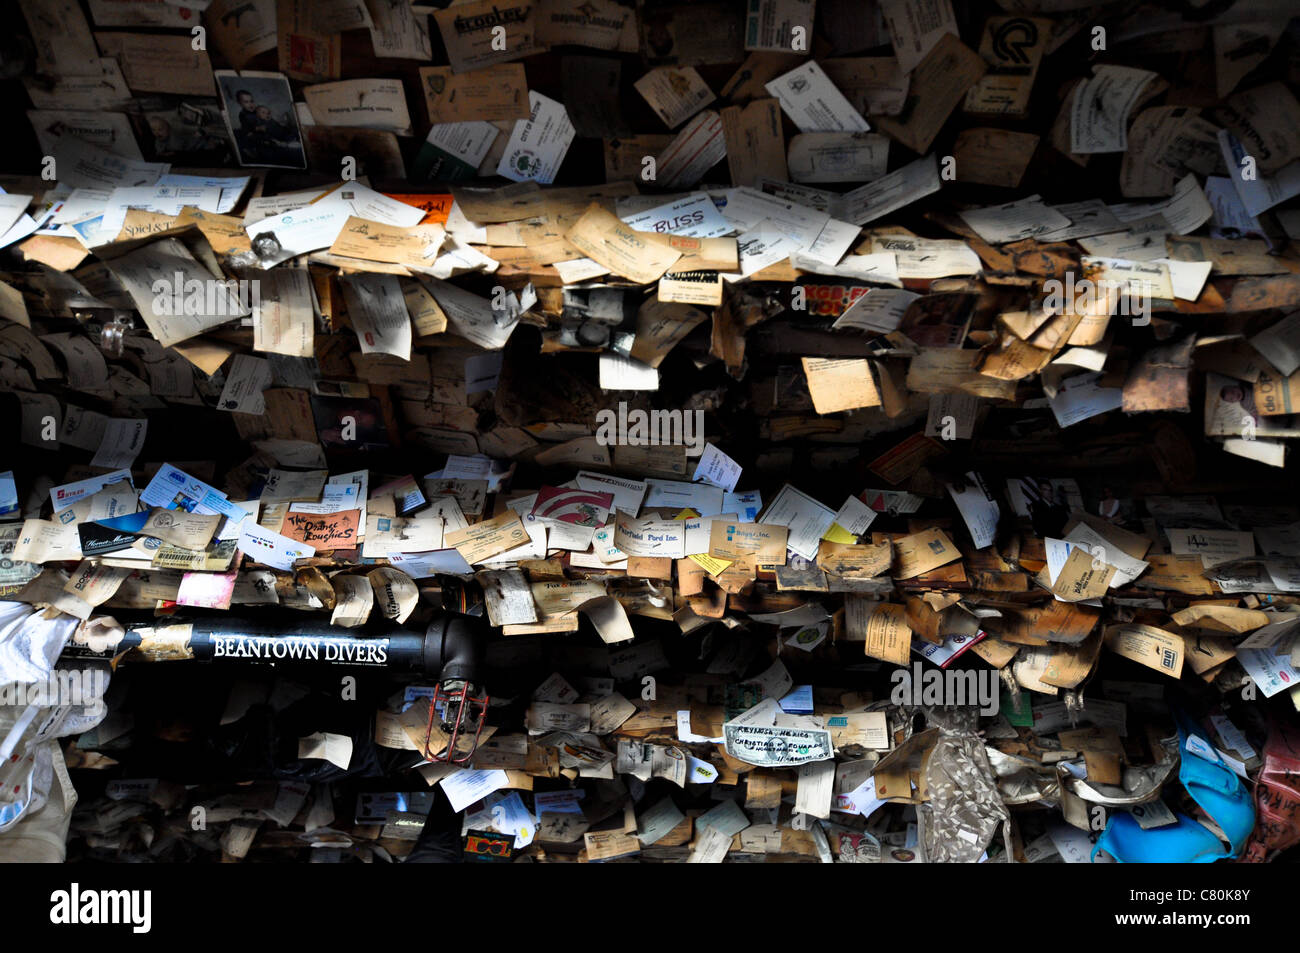 Captain Tony\'s Saloon Ceiling Covered in Business Cards - Key West ...